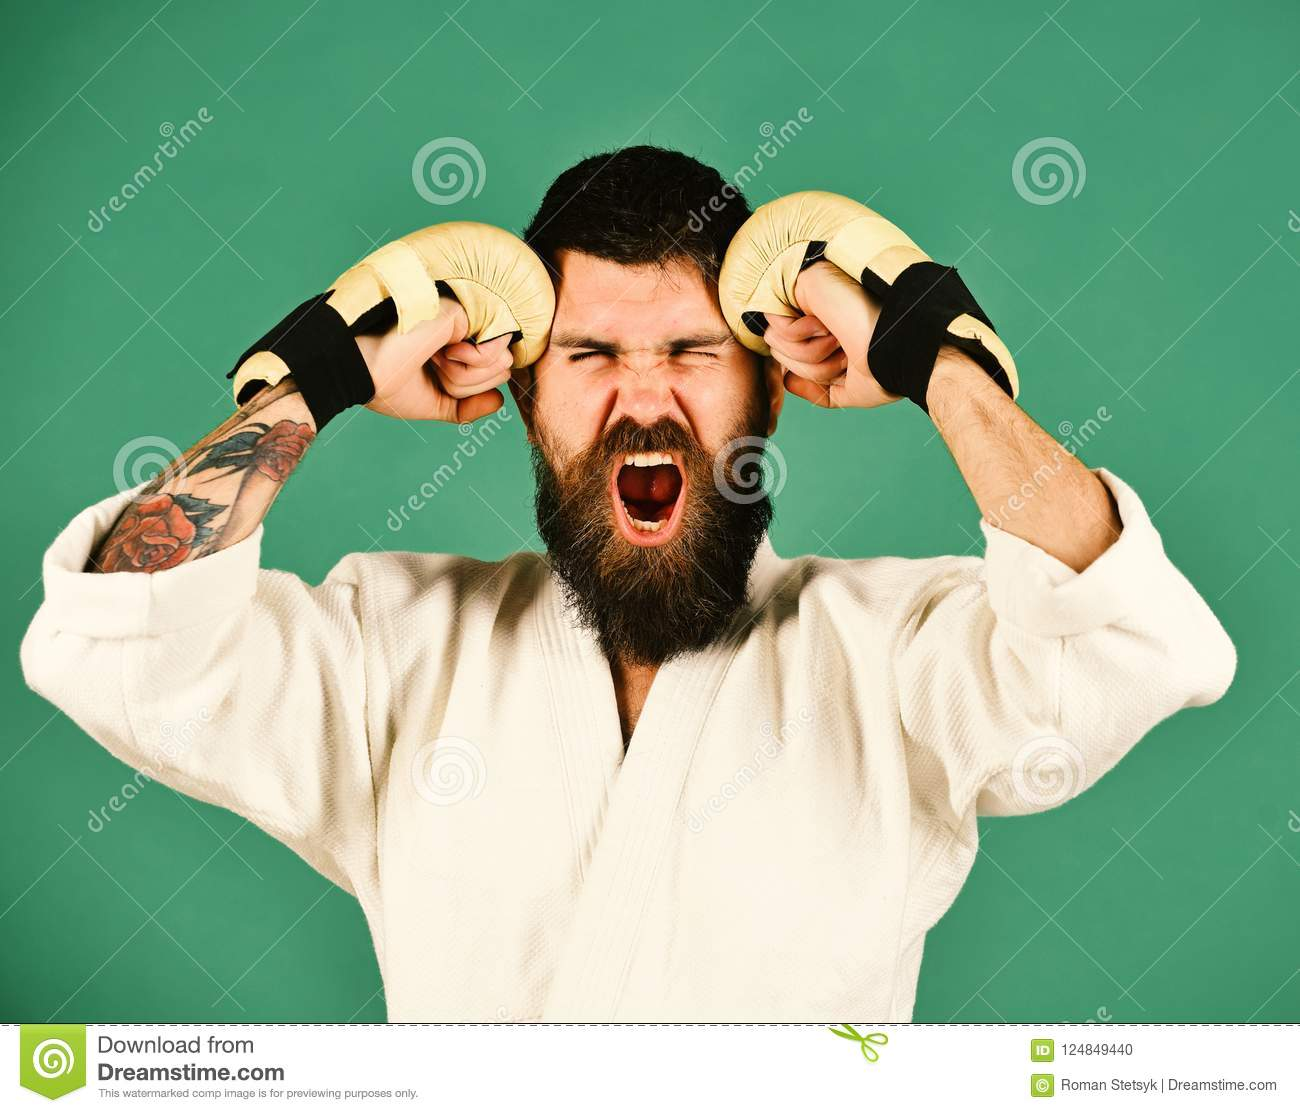 Oriental sports concept. Karate man with mad face in uniform